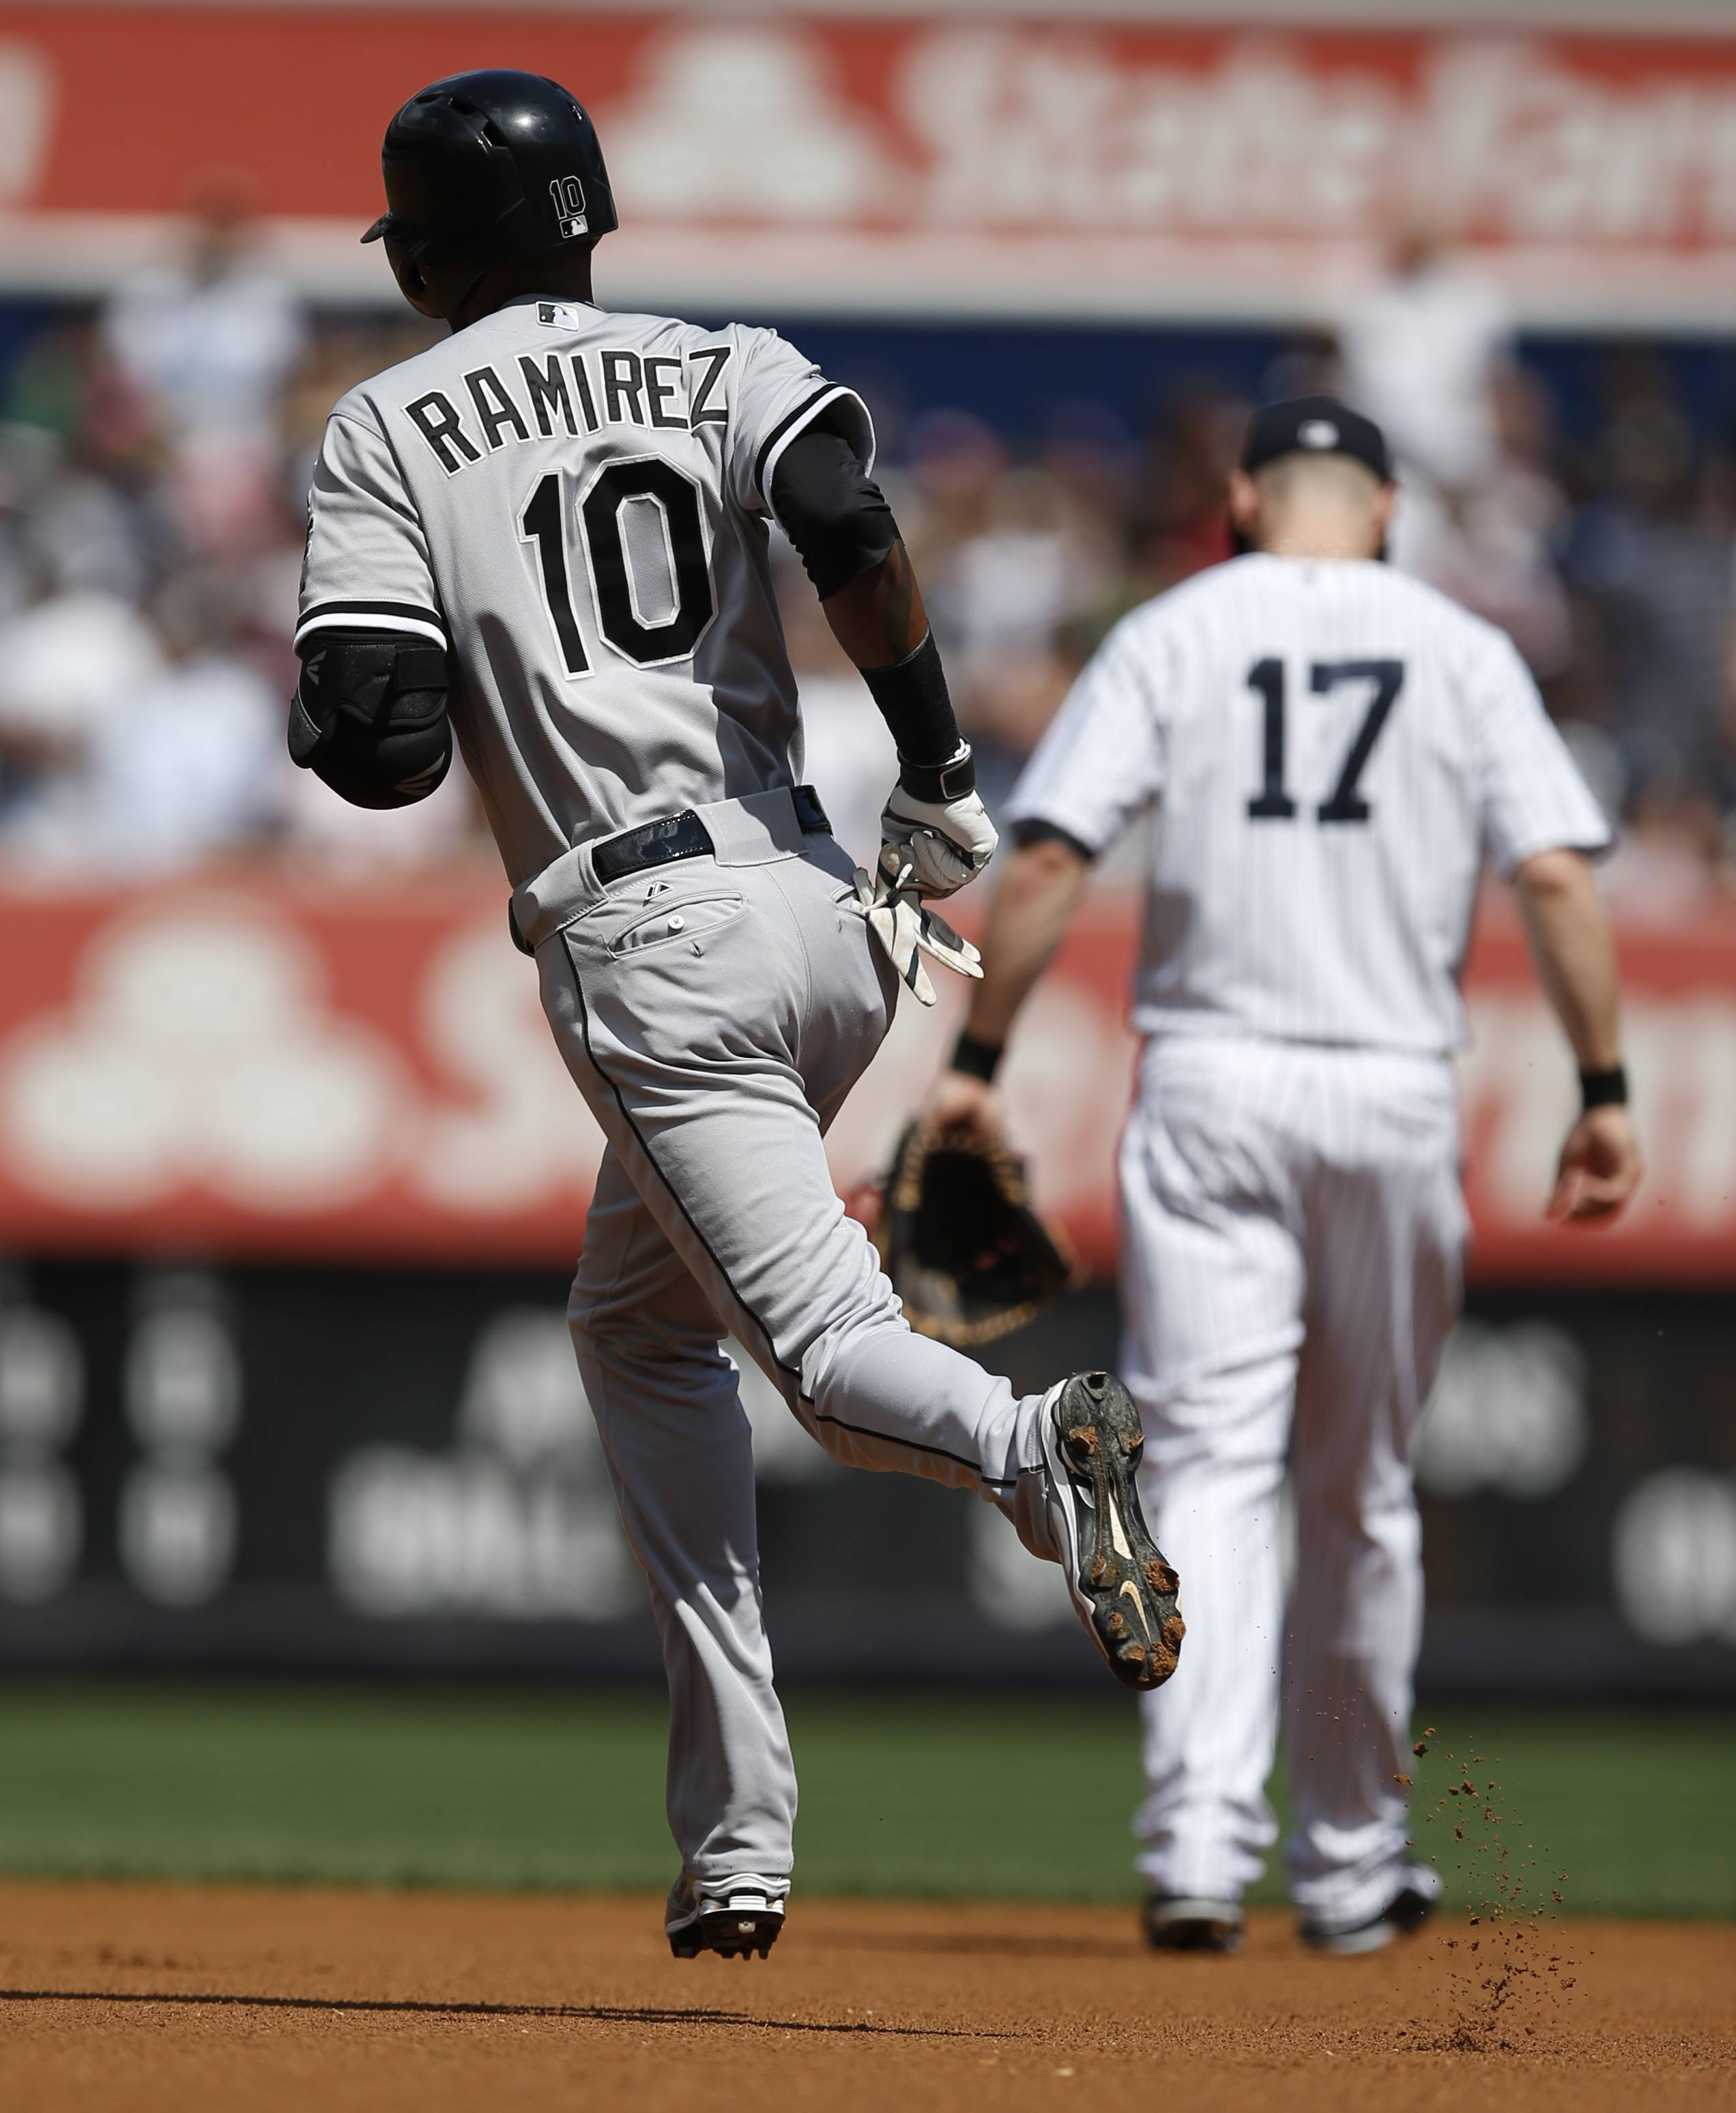 Chicago White Sox Alexei Ramirez (10) trots the bases past New York Yankees second baseman Brendan Ryan (17) after hitting a first-inning, solo home run off New York Yankees starting pitcher Chris Capuano.